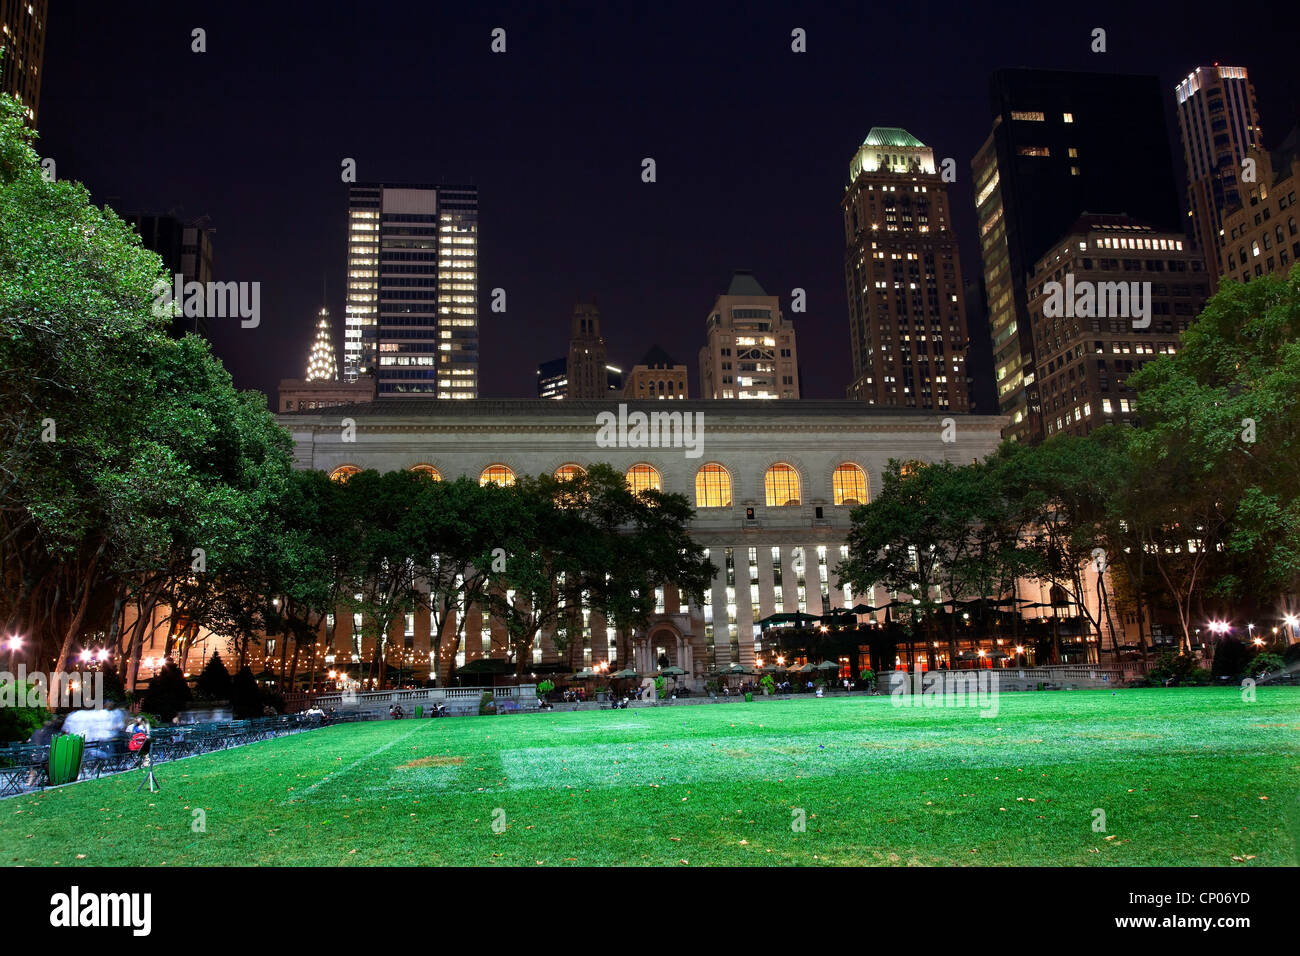 Bryant Park New York City Green Grass Skyline Apartment Buildings Public Library Night - Stock Image